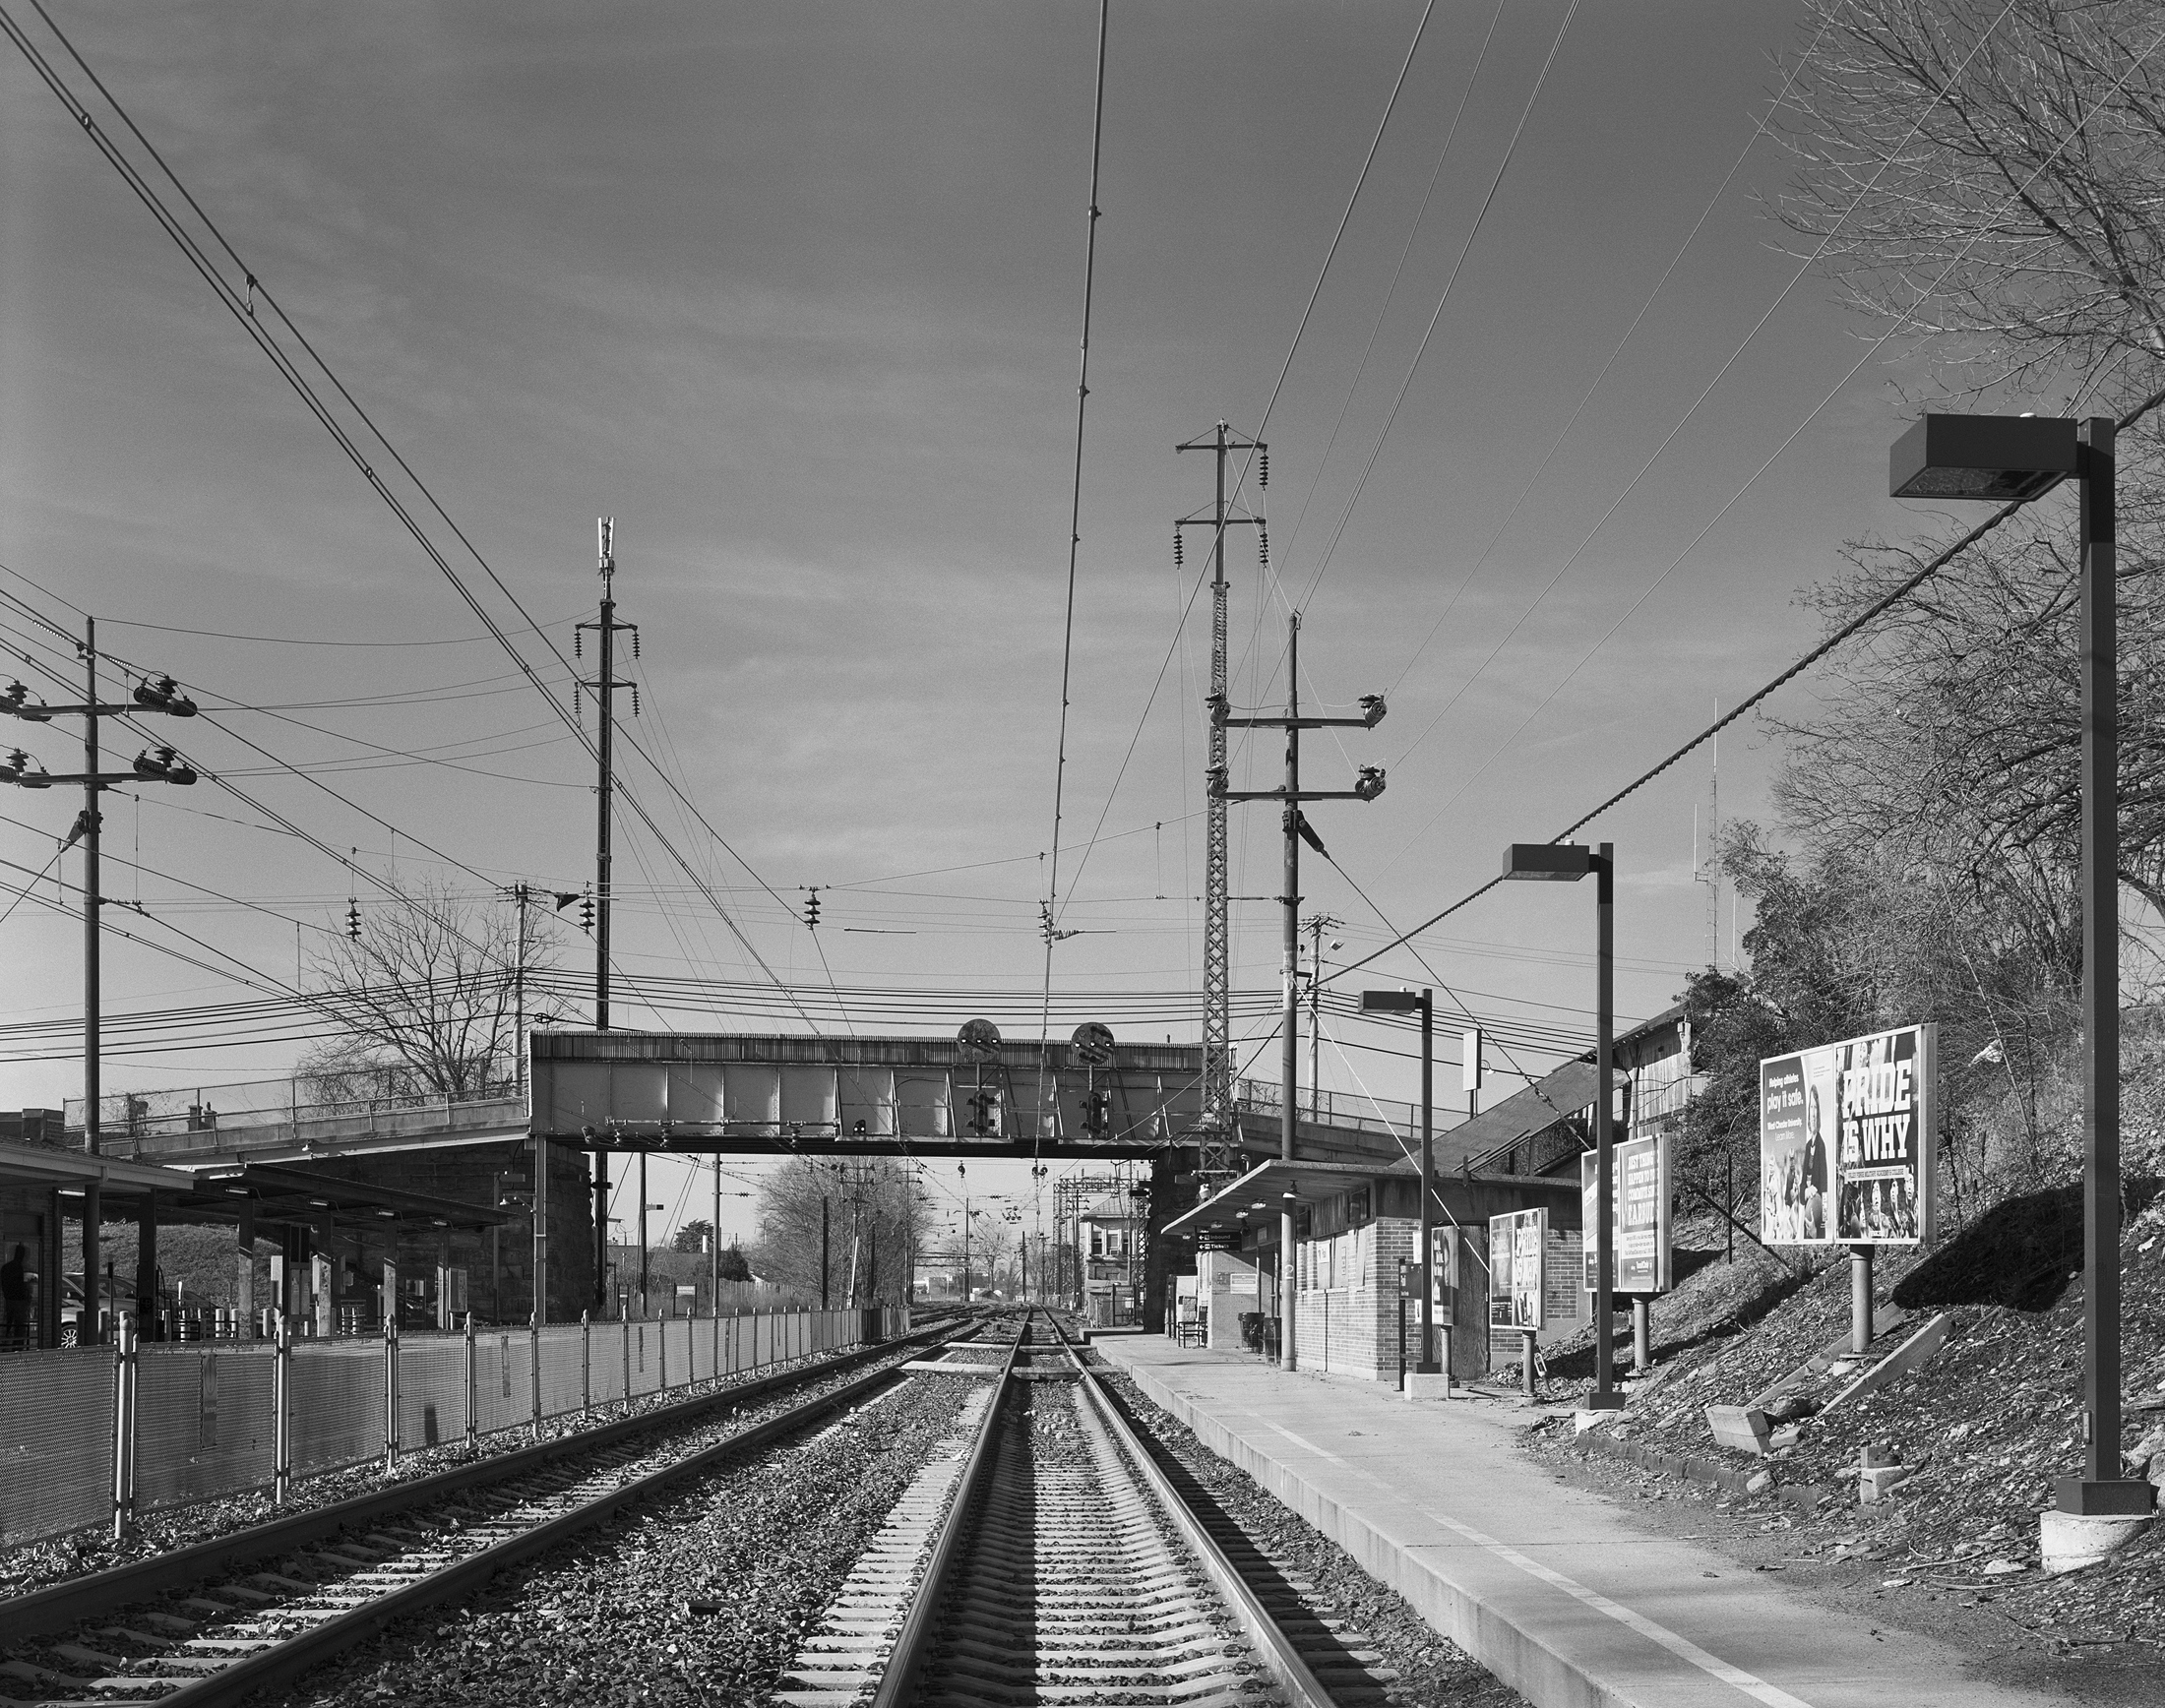 The western terminus of the 1915 electrification was Paoli, Pennsylvania just 20 miles west of Broad Street Station. Here in a modern view we look west toward the interlocking tower and former shop facility used to service the MP54 MU cars. Telltale details of the 1915 electrification include both the lattice style and tubular trolley poles that support the catenary system. Note: This photograph was taken with Amtrak permission under watchman protection, the author does not condone any type of trespassing on railroad or private property.